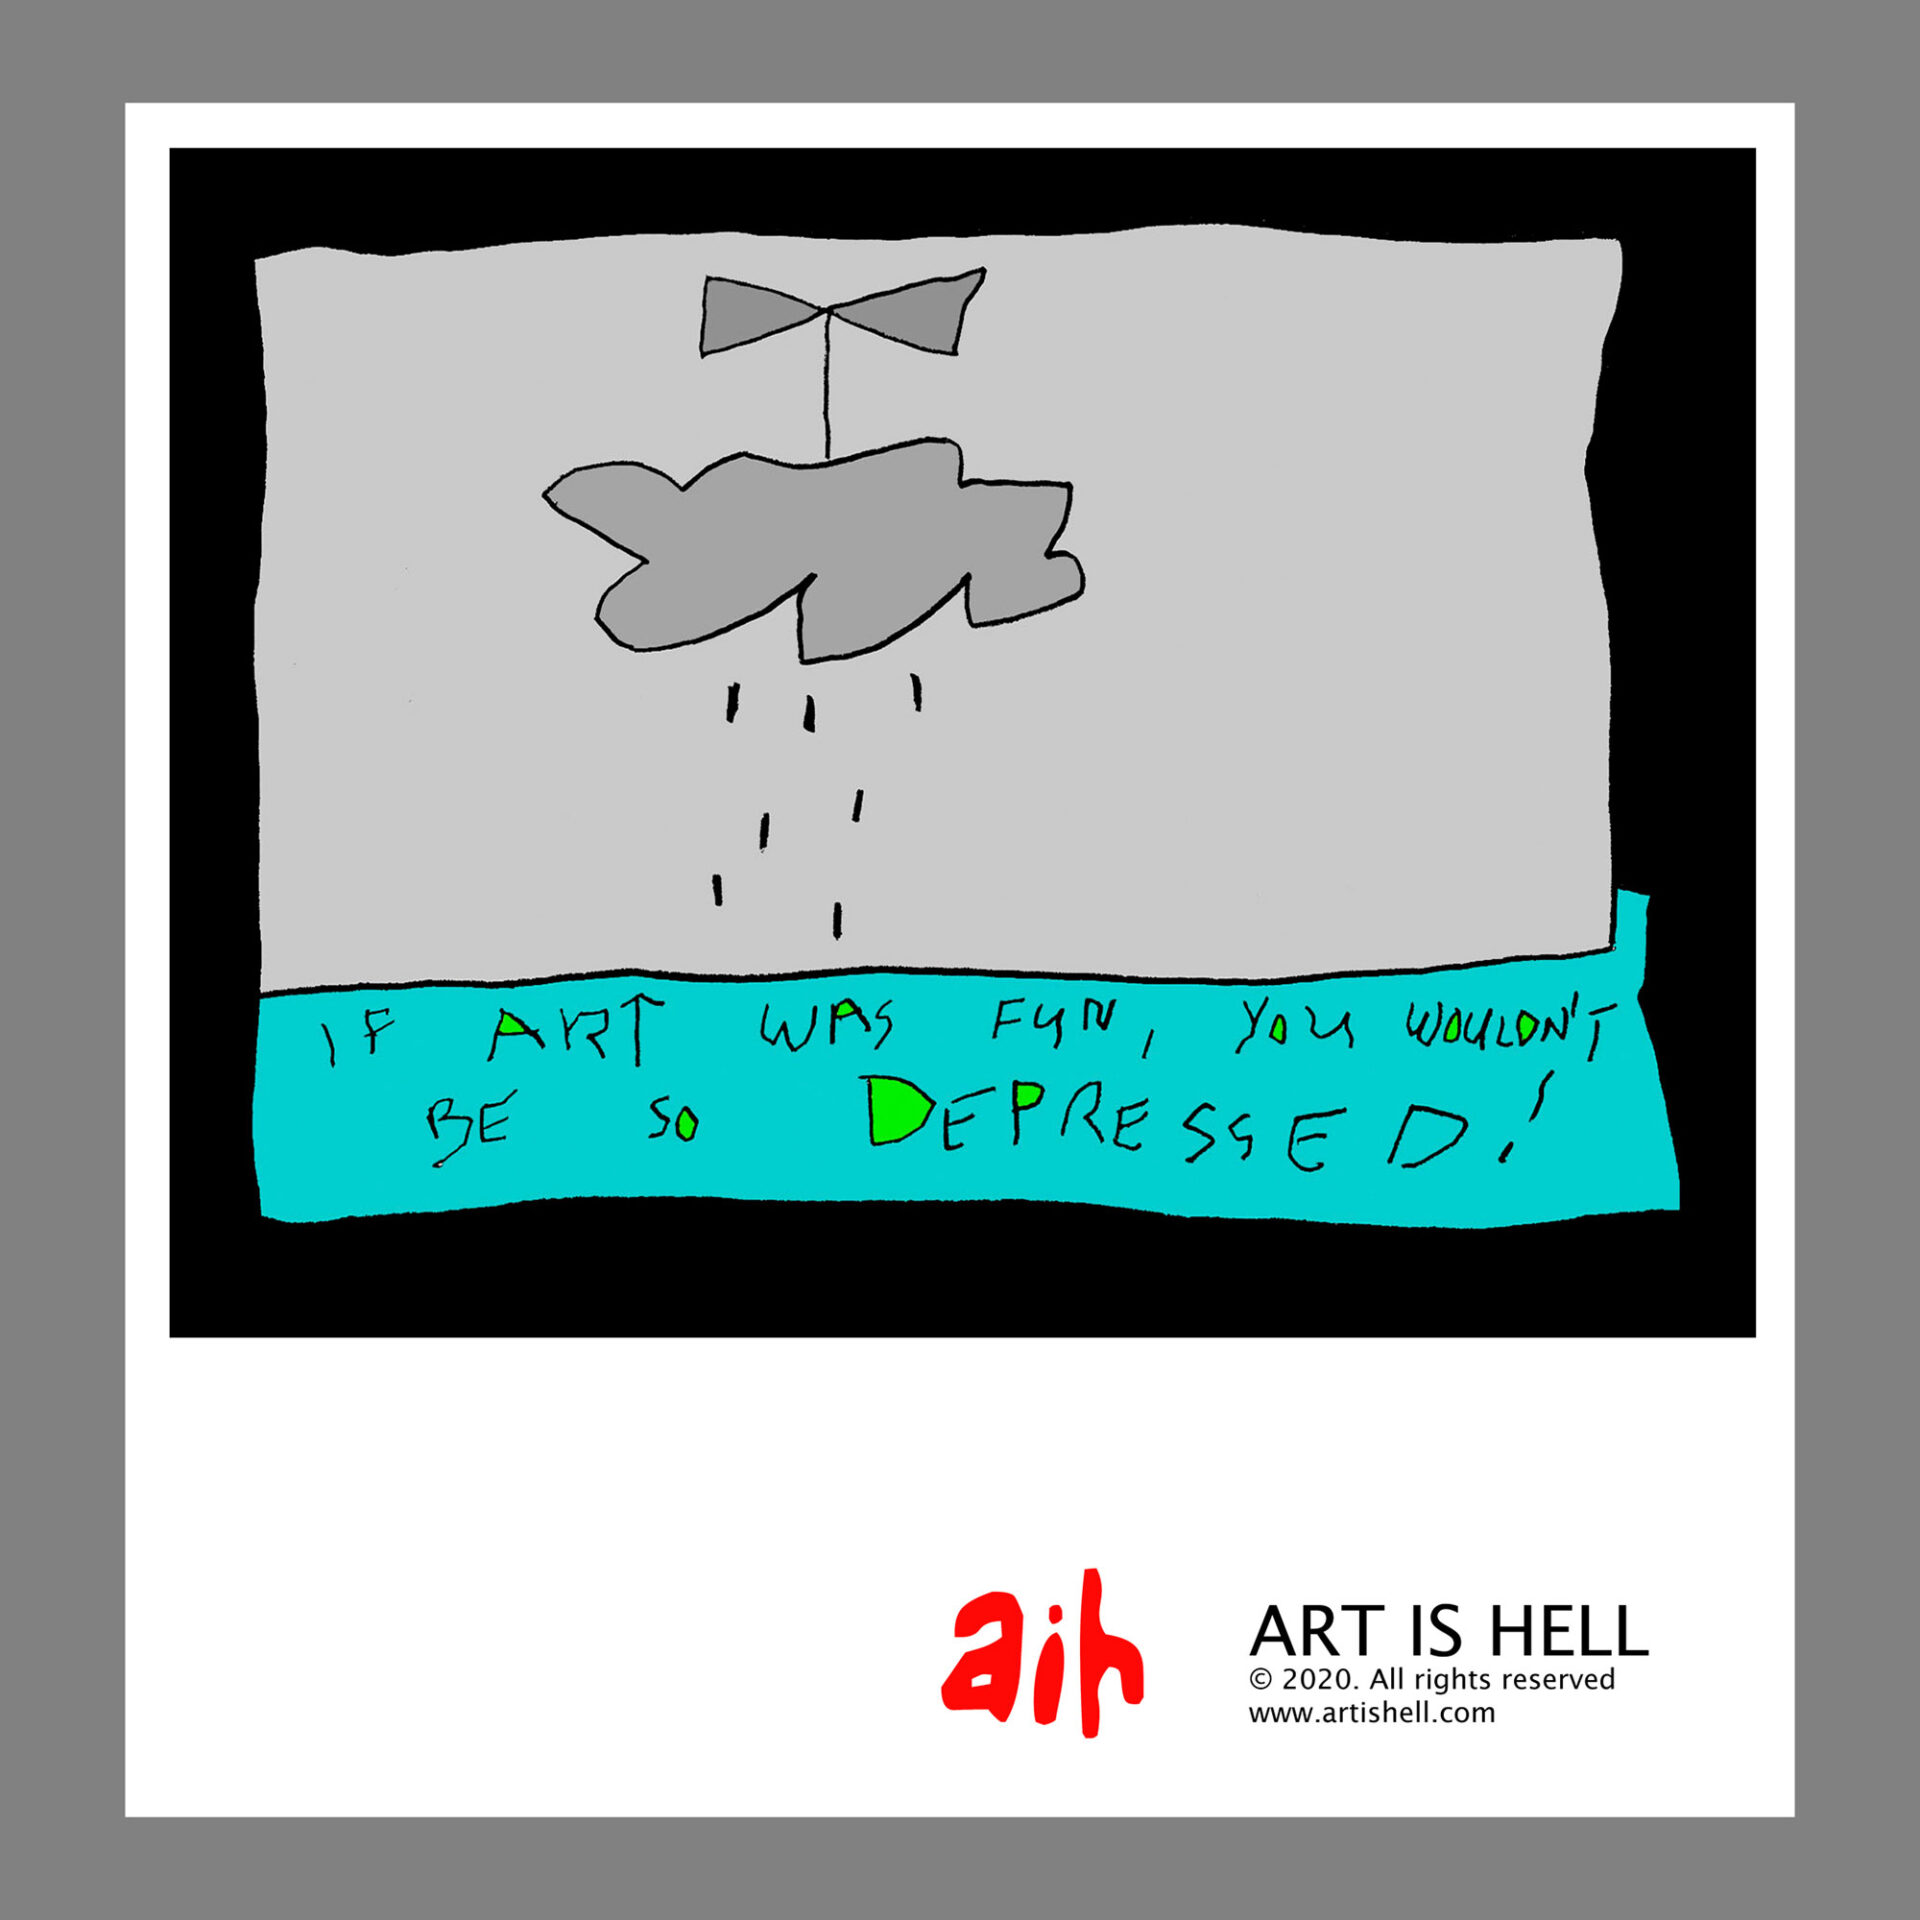 If Art Was Fun, You Wouldn't Be So Depressed! 24 x 20 inch poster. CA$ 30.00